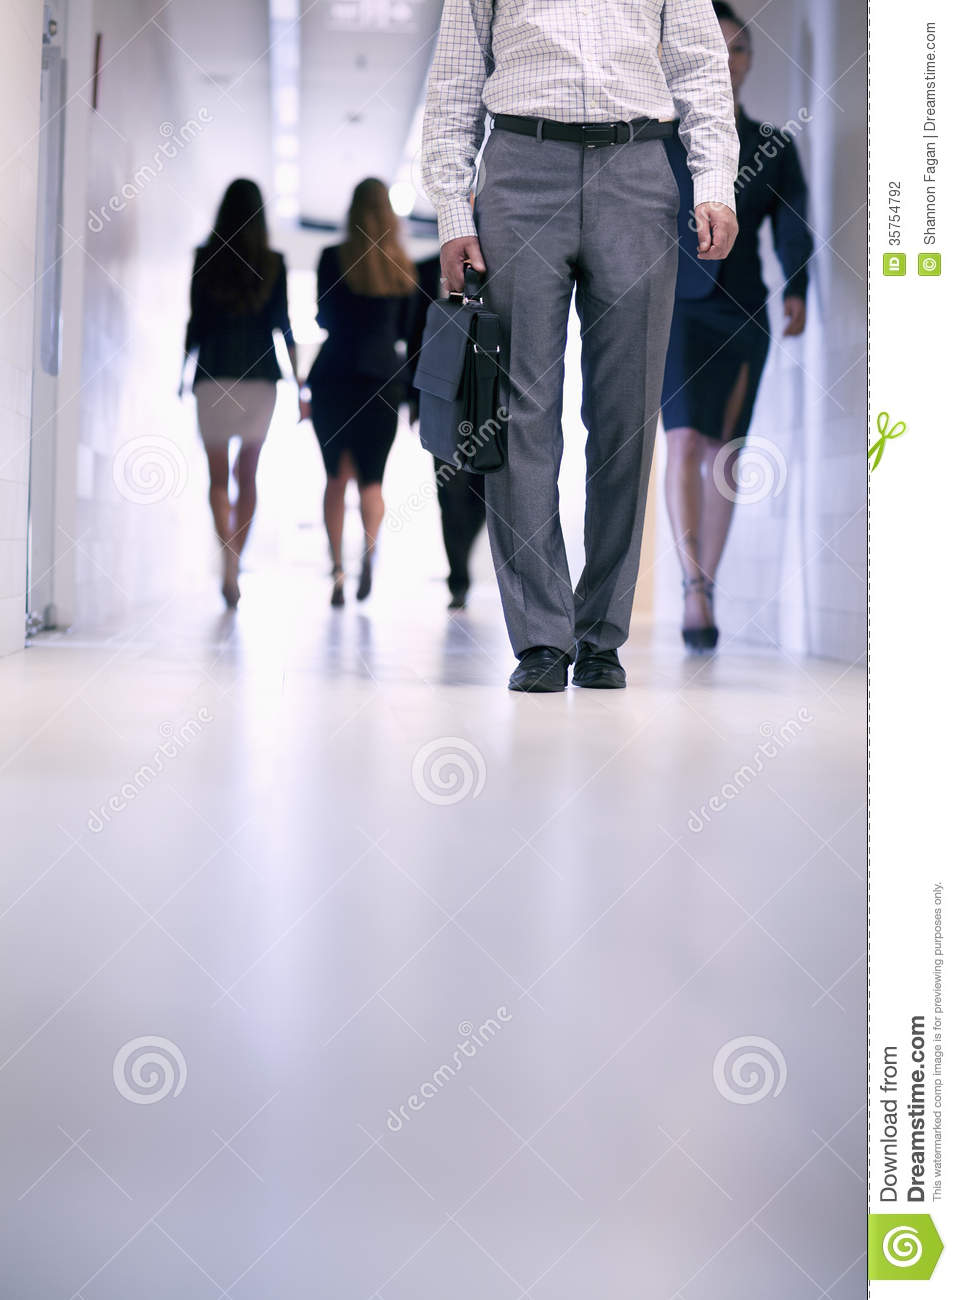 Low View Of People Walking Down The Corridor In An Office